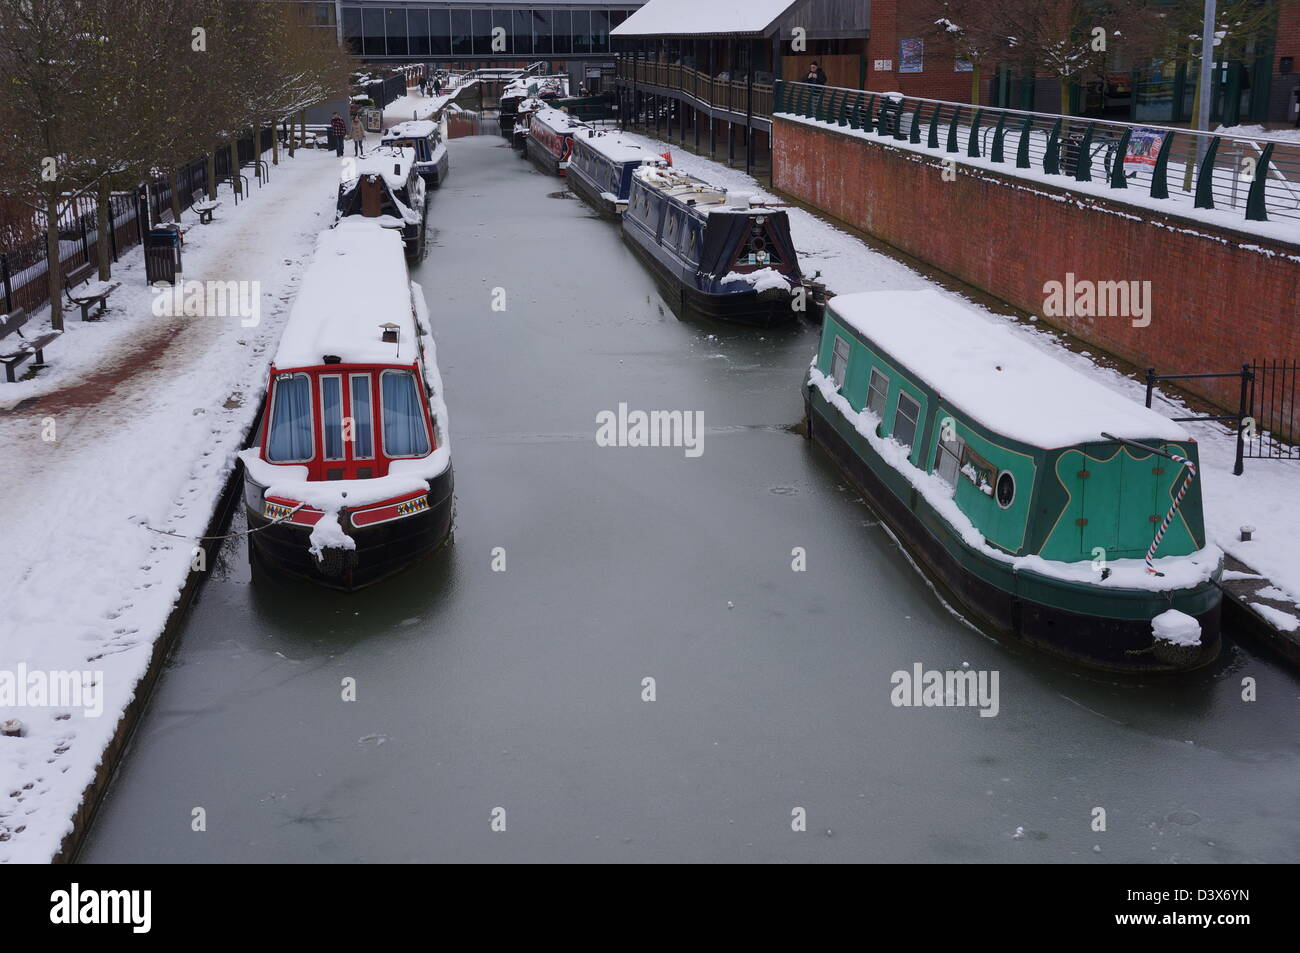 Castle quay shopping centre with oxford canal in foreground - banbury uk - Stock Image